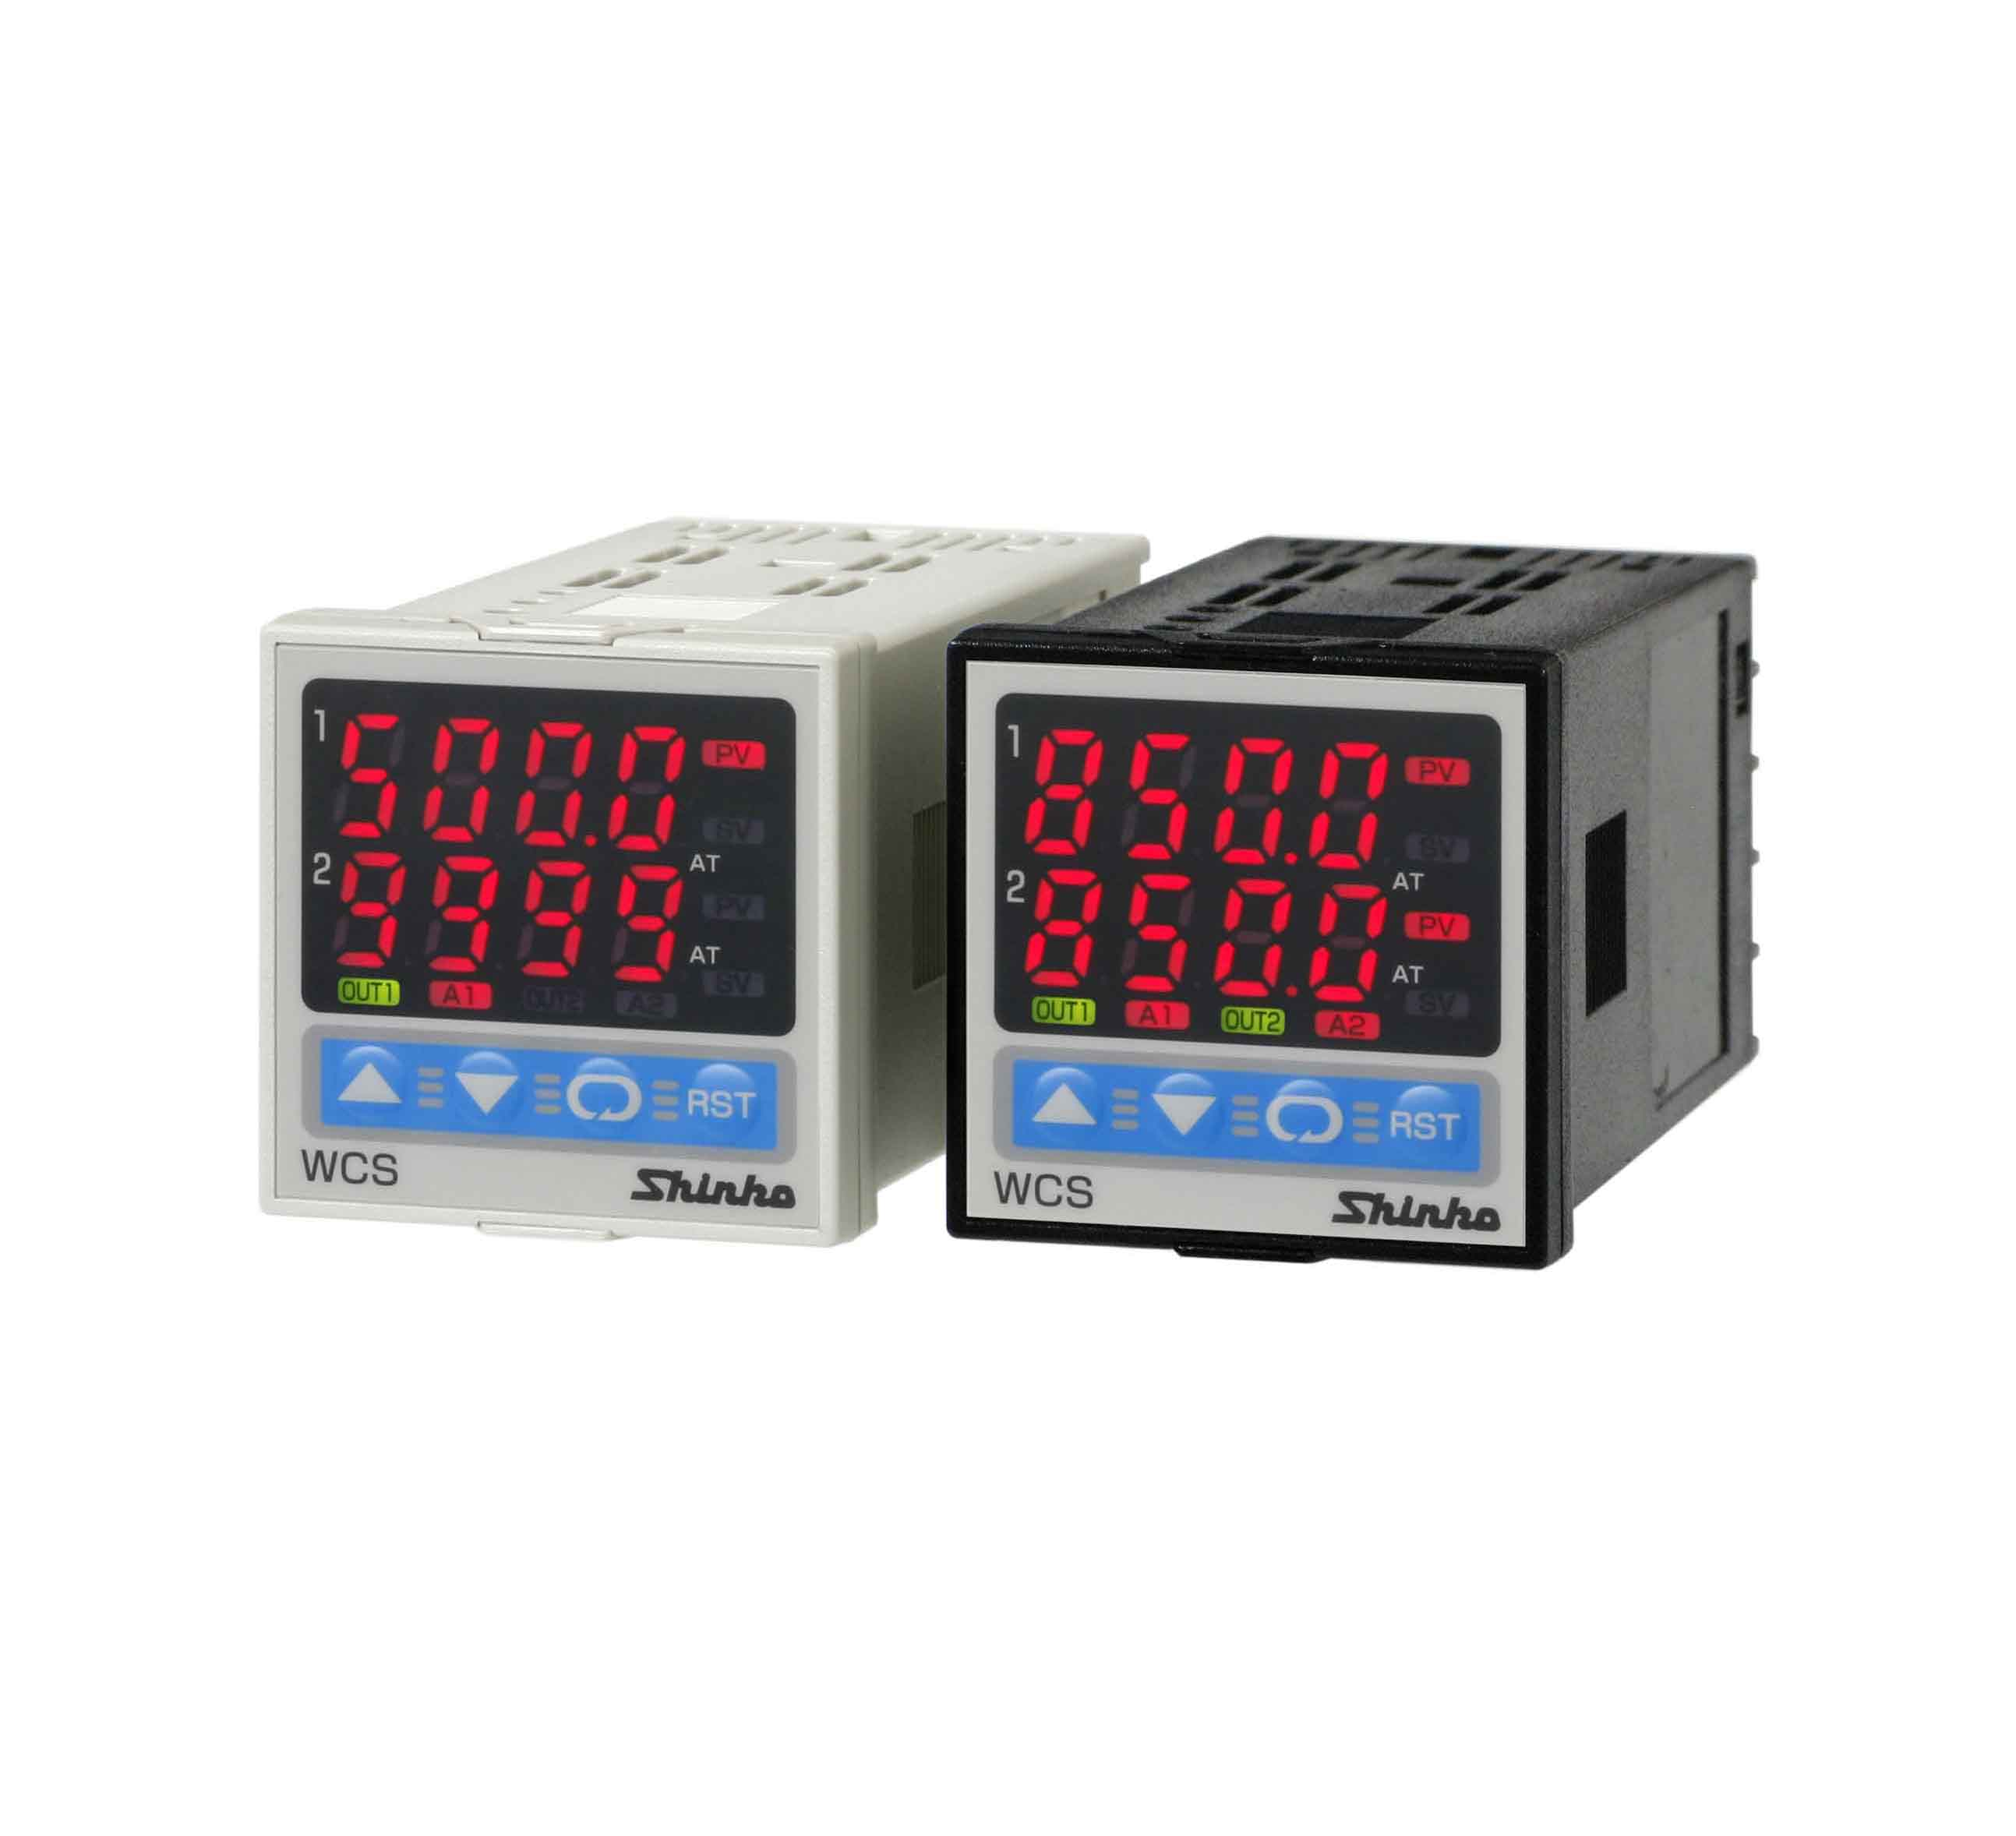 wc series wc dual controller or controller timer #B6152F